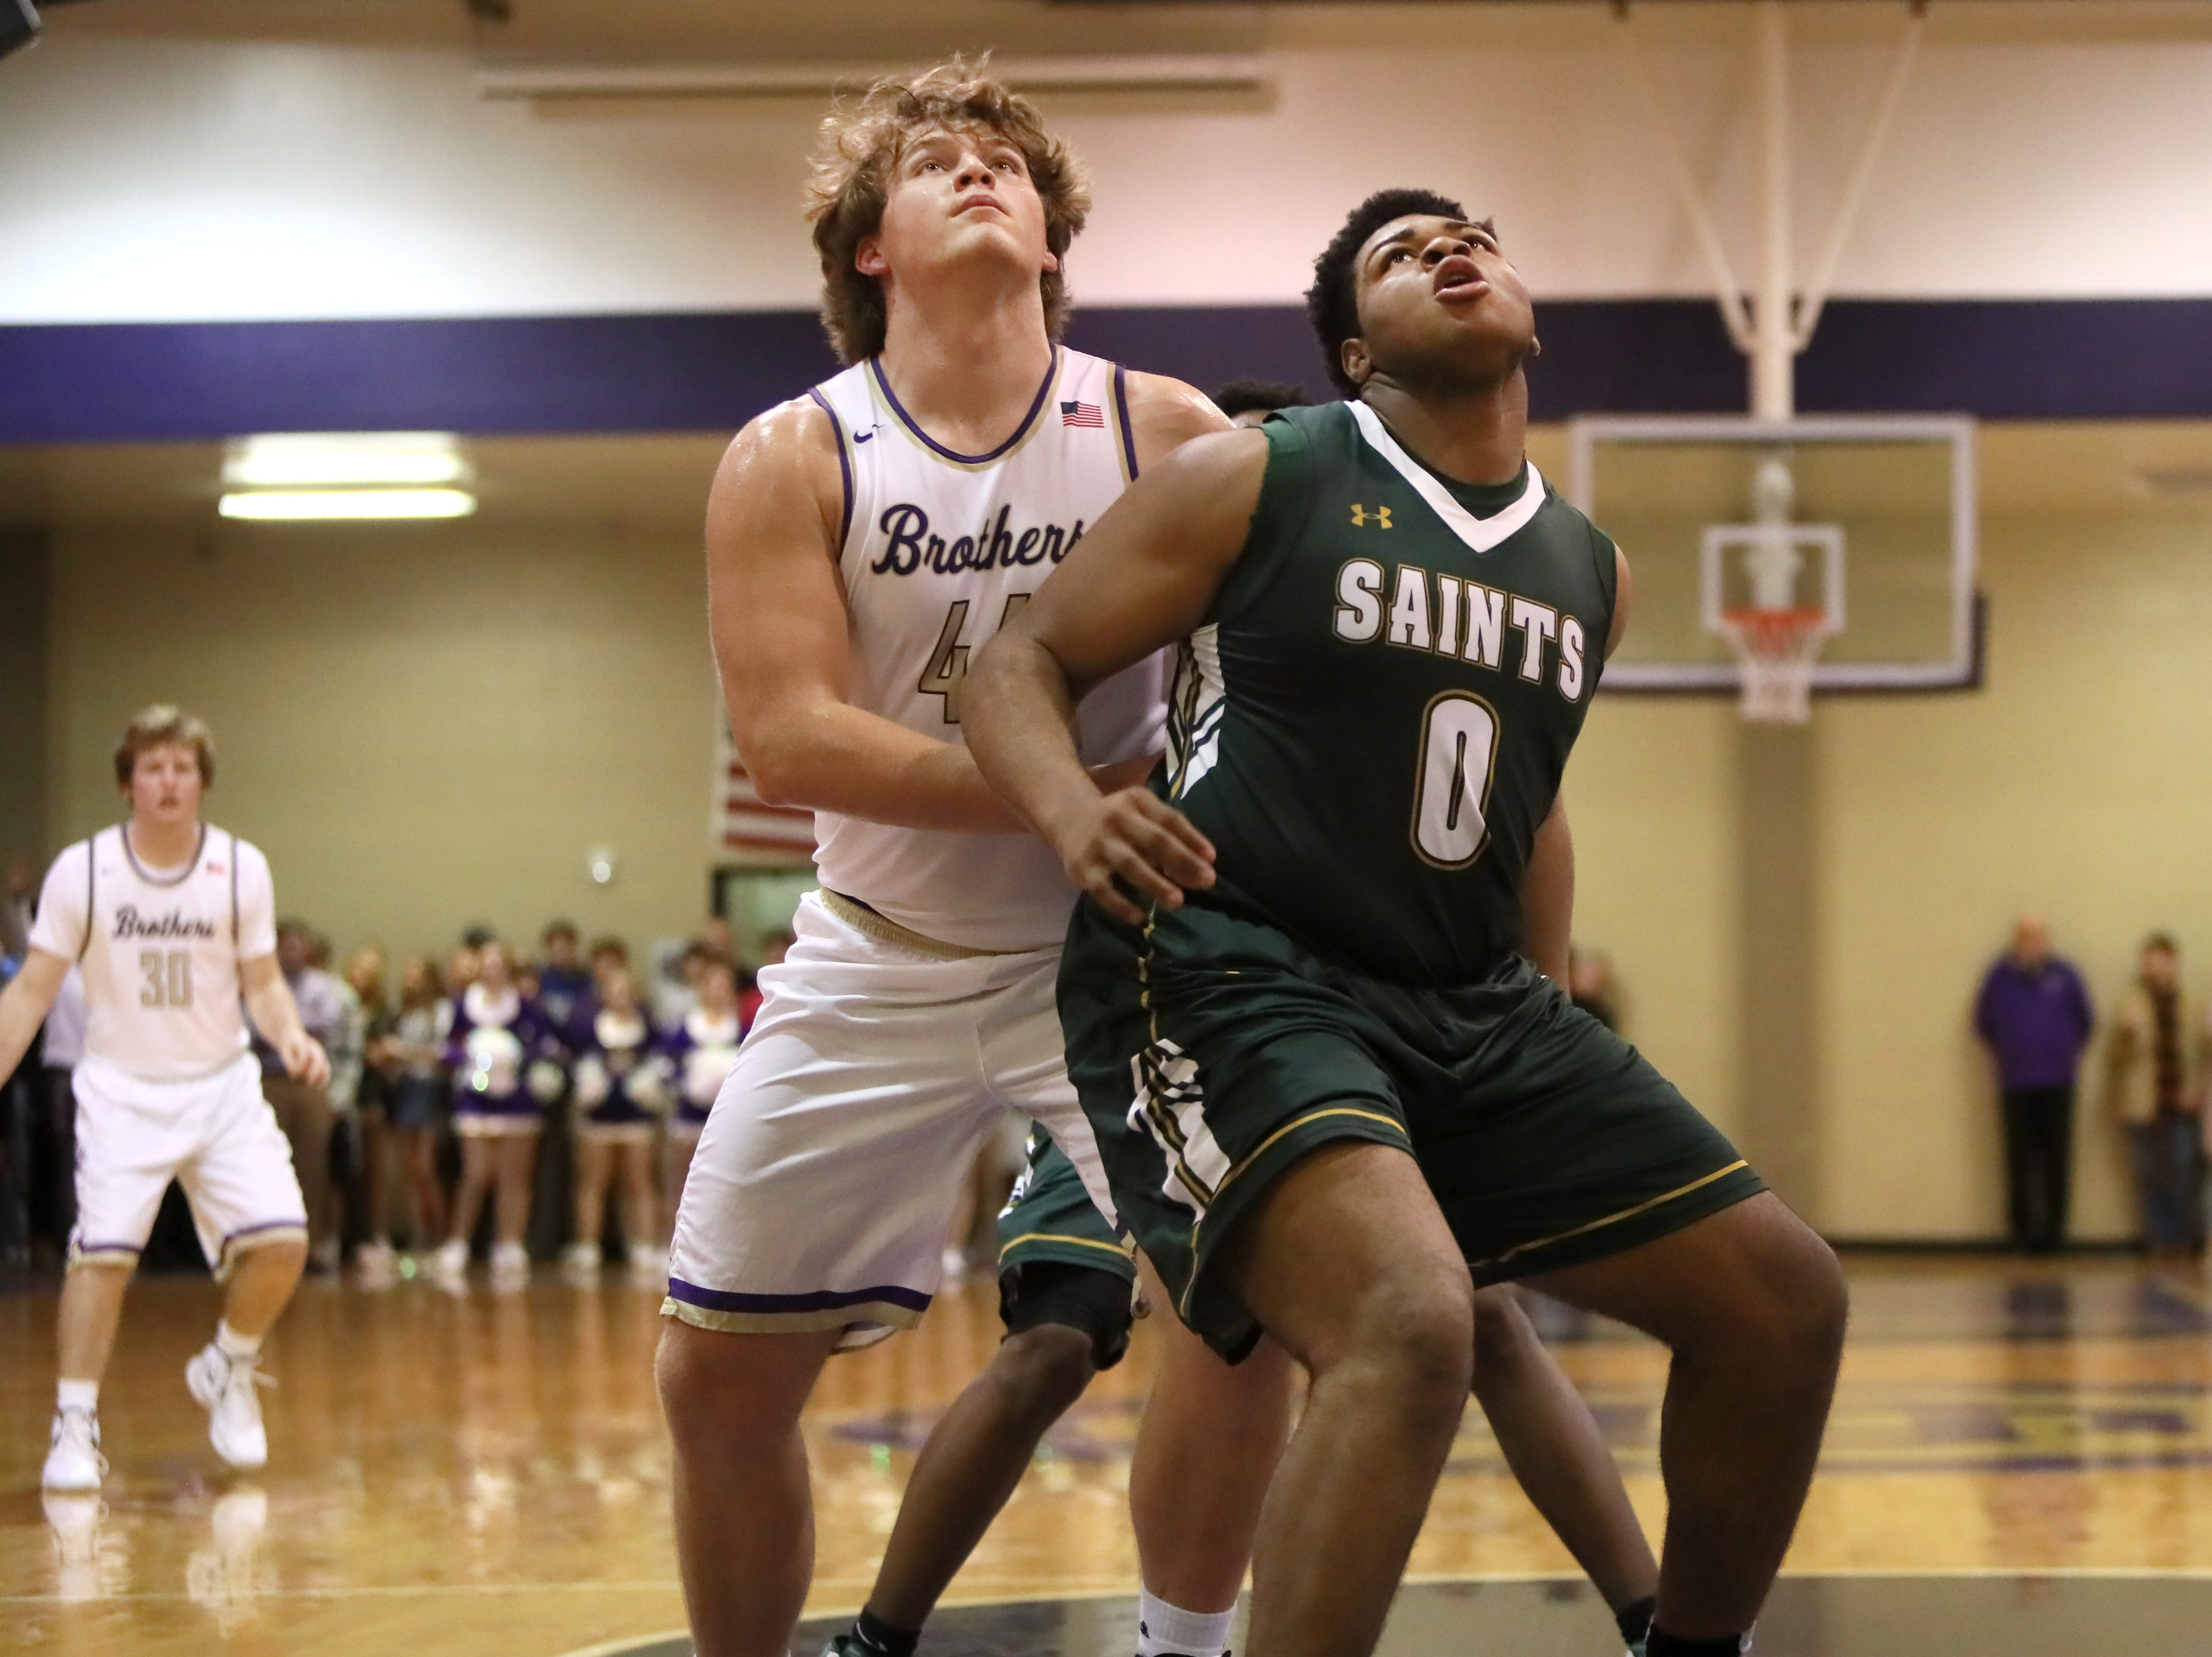 Briarcrest's Omari Thomas battles for position on a rebound with Christian Brothers' Bill Norton during their game at Christian Brothers High School on Friday, Jan. 11, 2019.